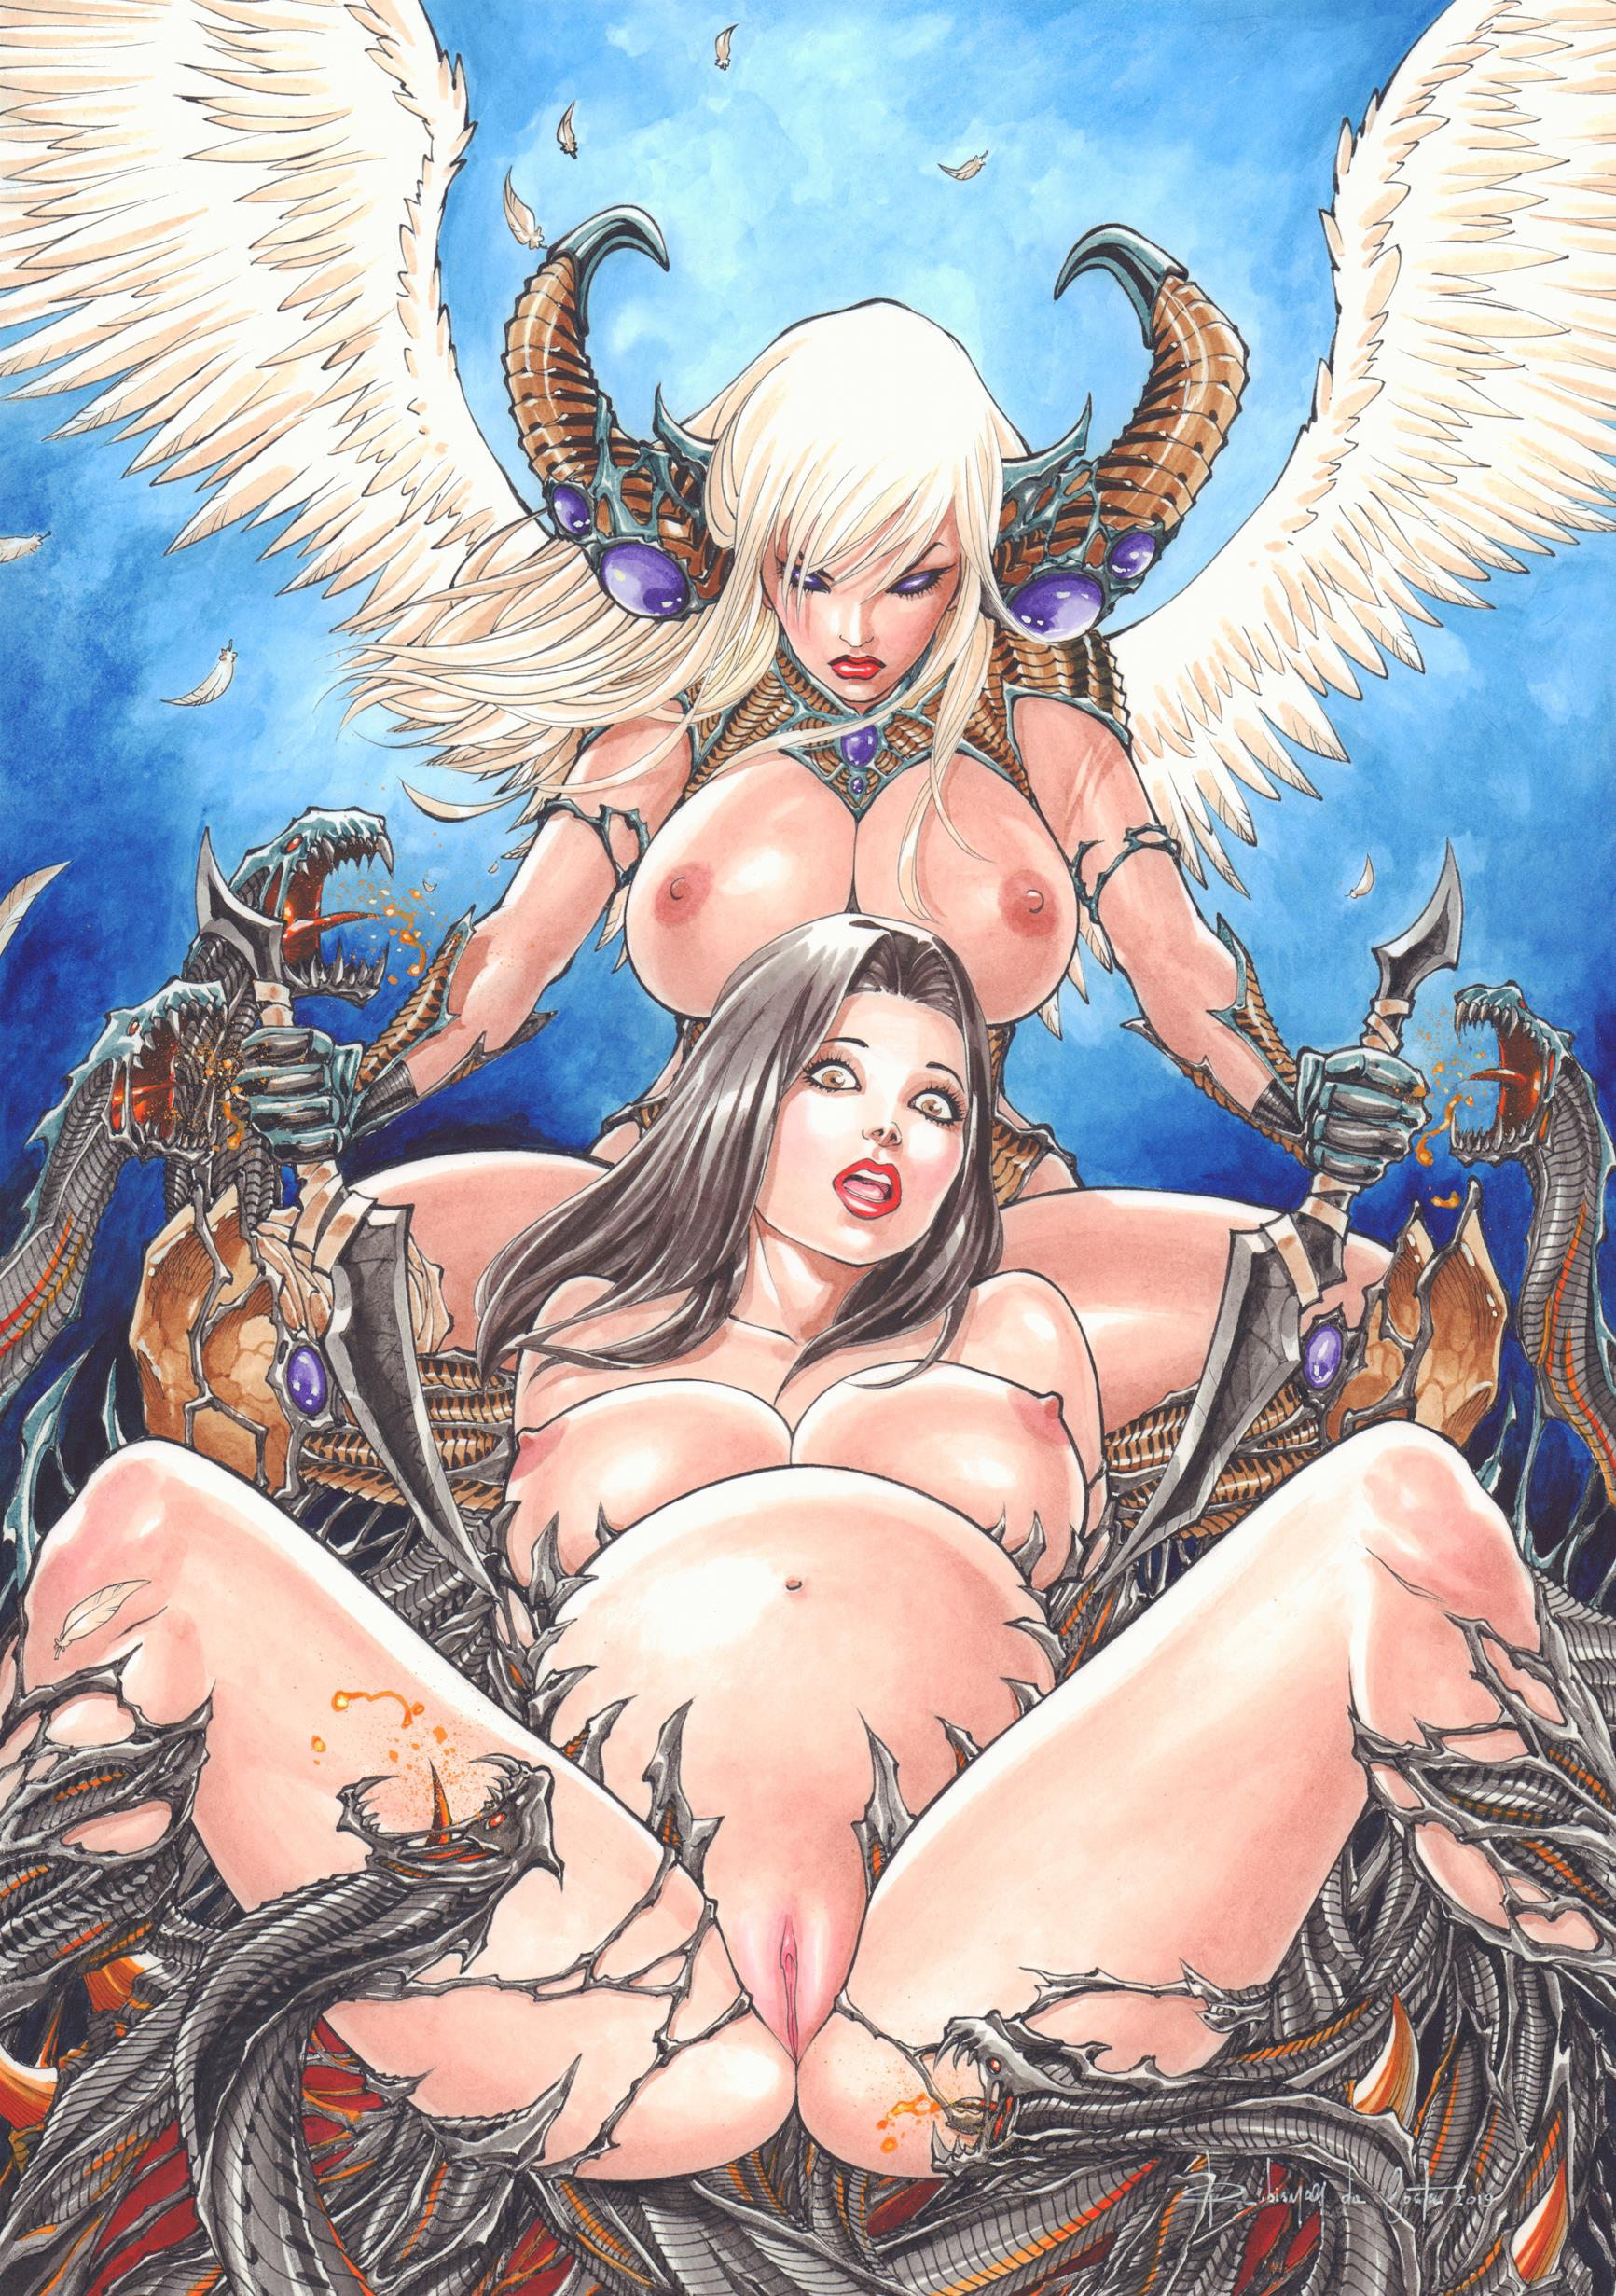 Angelus and witchblade vs Darkiness